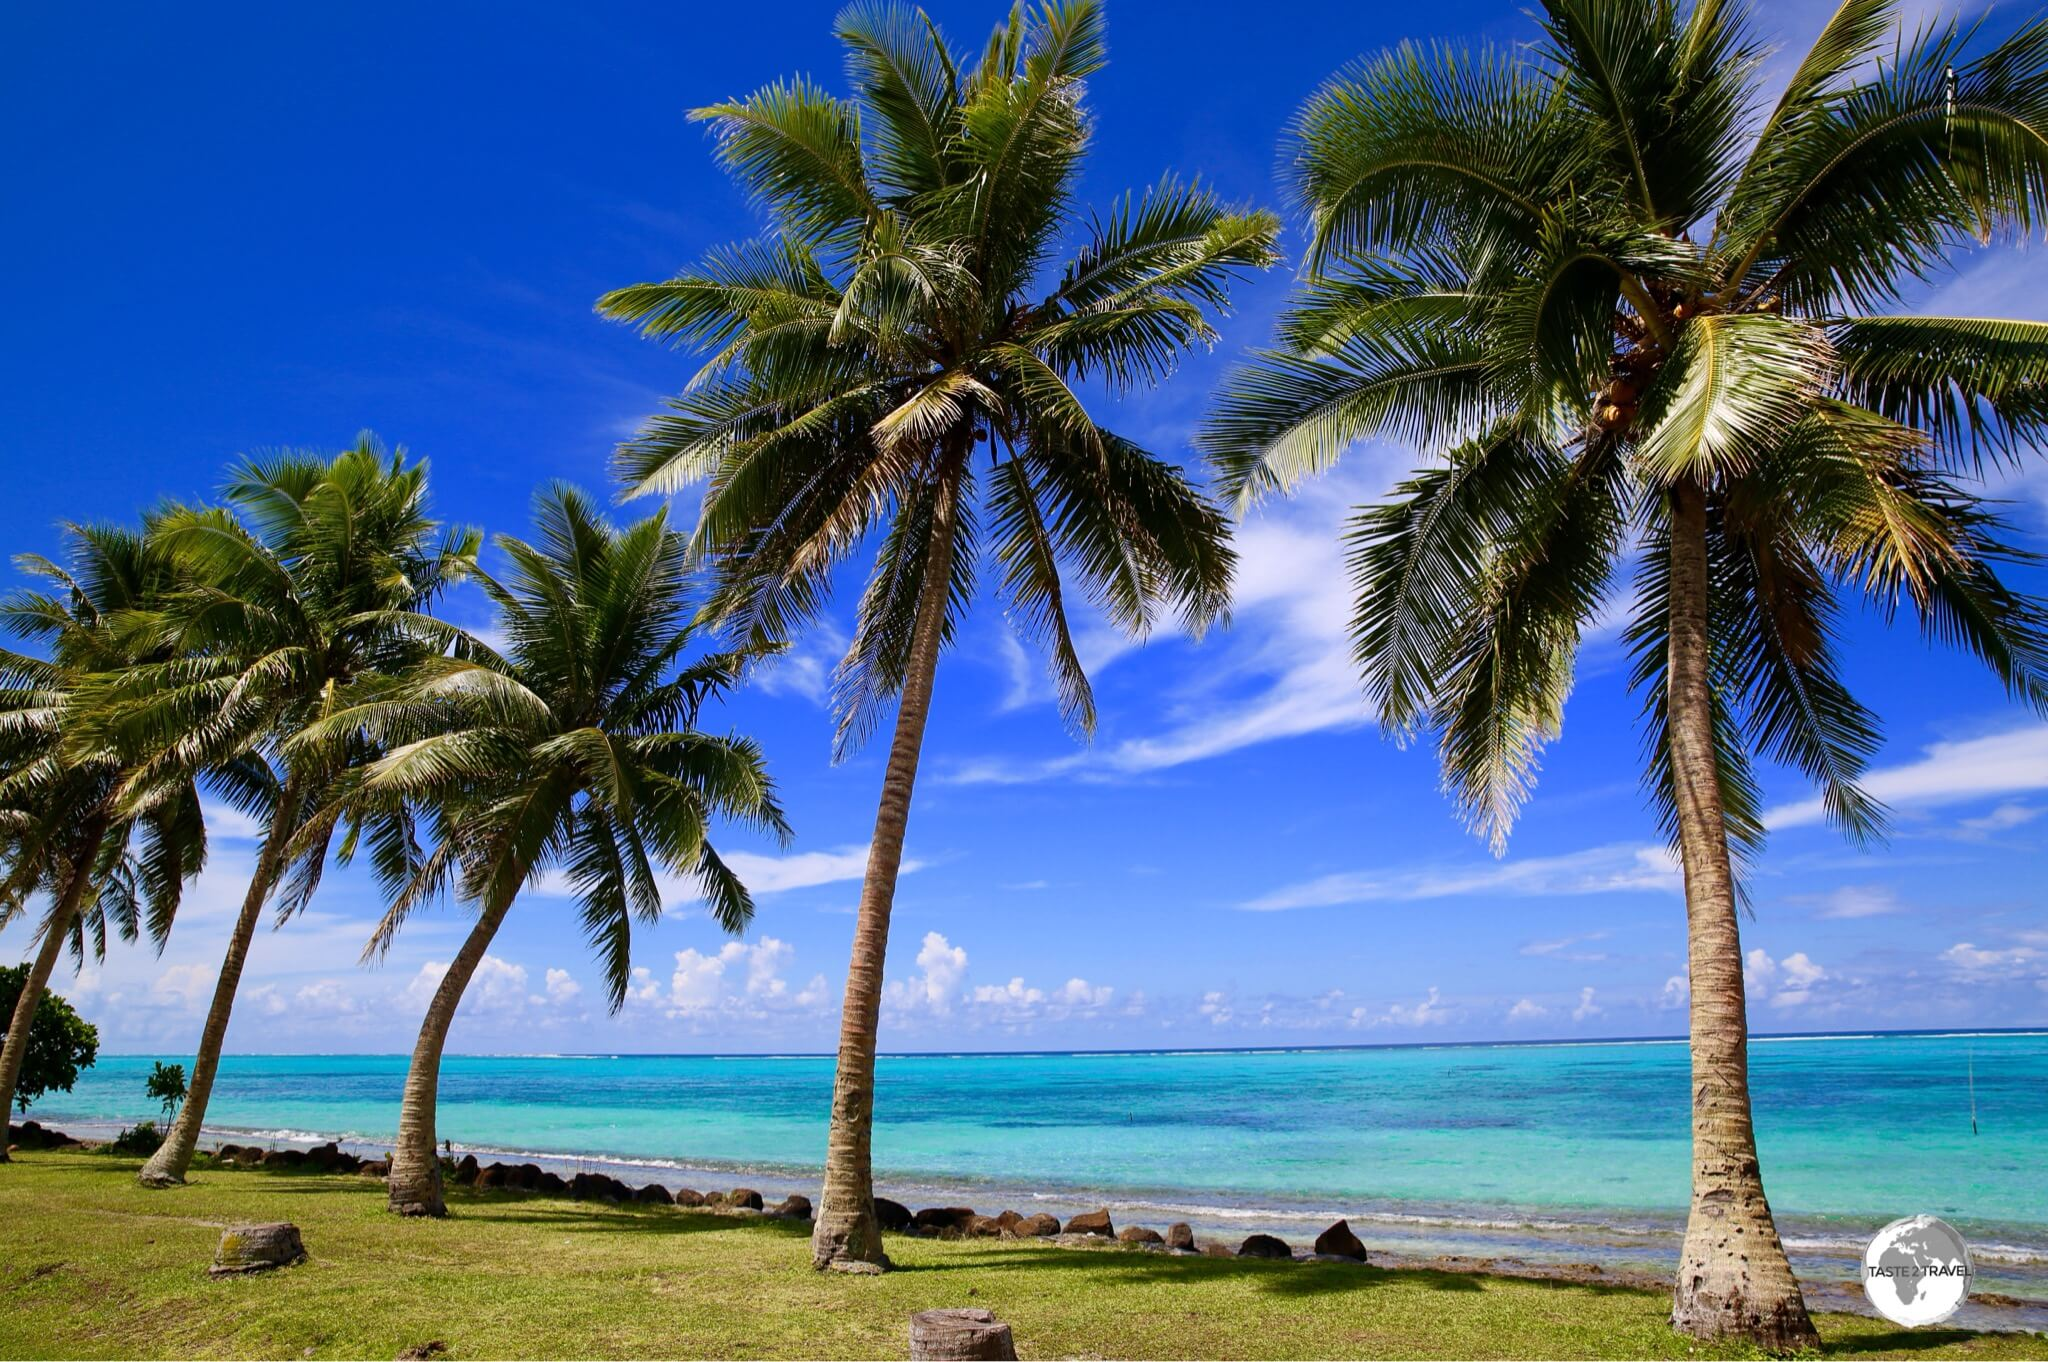 Palm trees line the shoreline of the dazzling lagoon on the east coast of Savai'i.